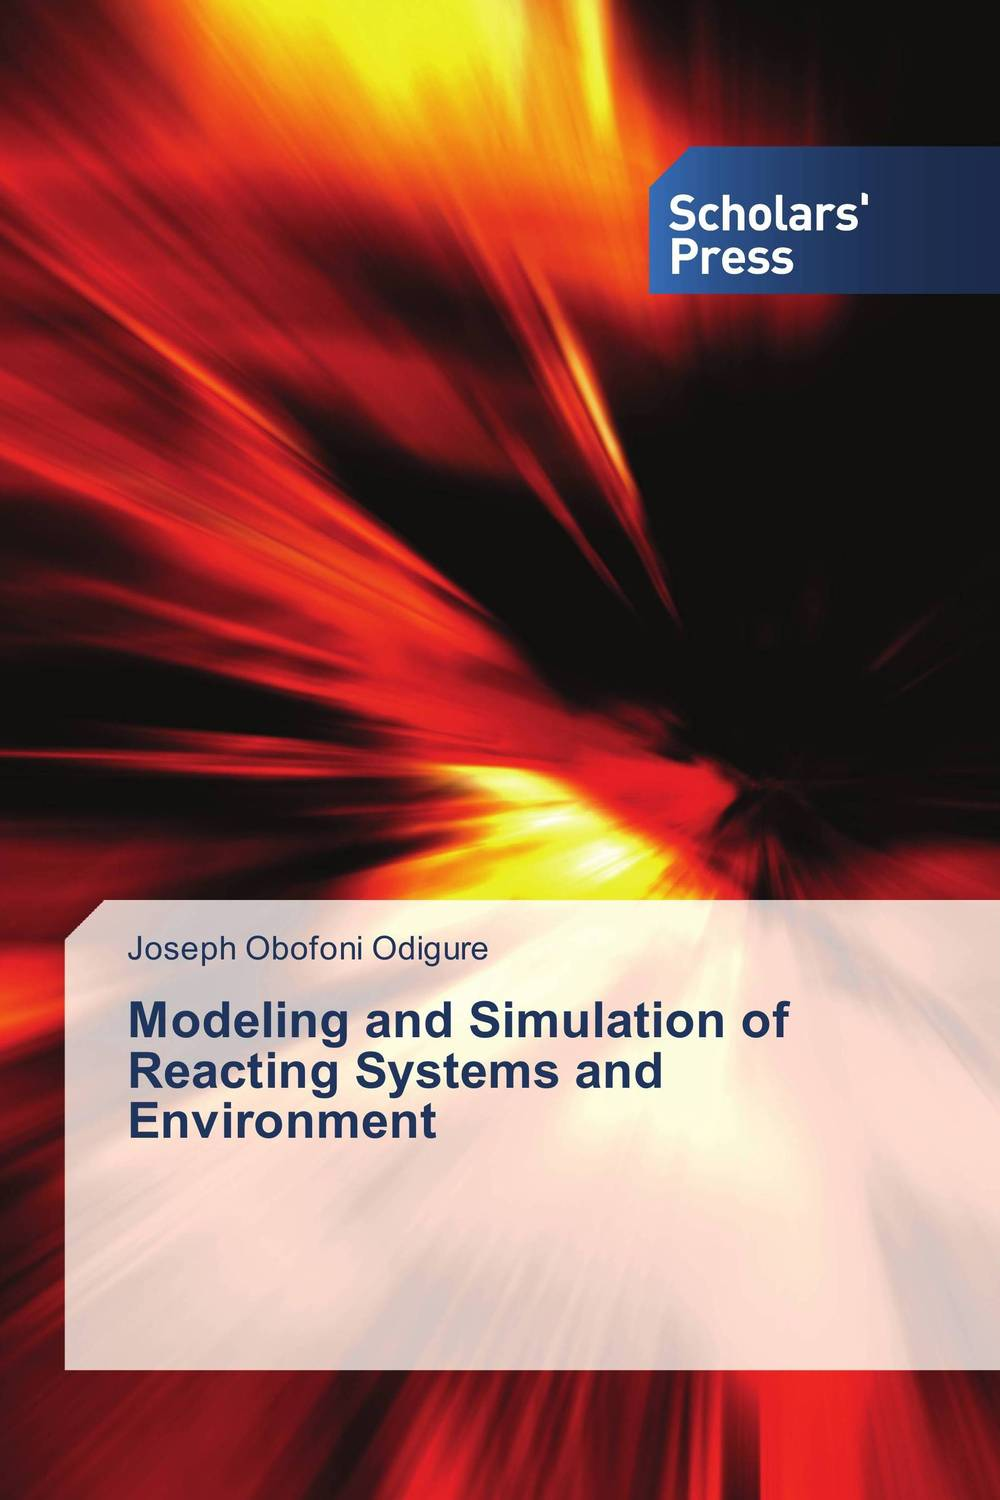 Modeling and Simulation of Reacting Systems and Environment